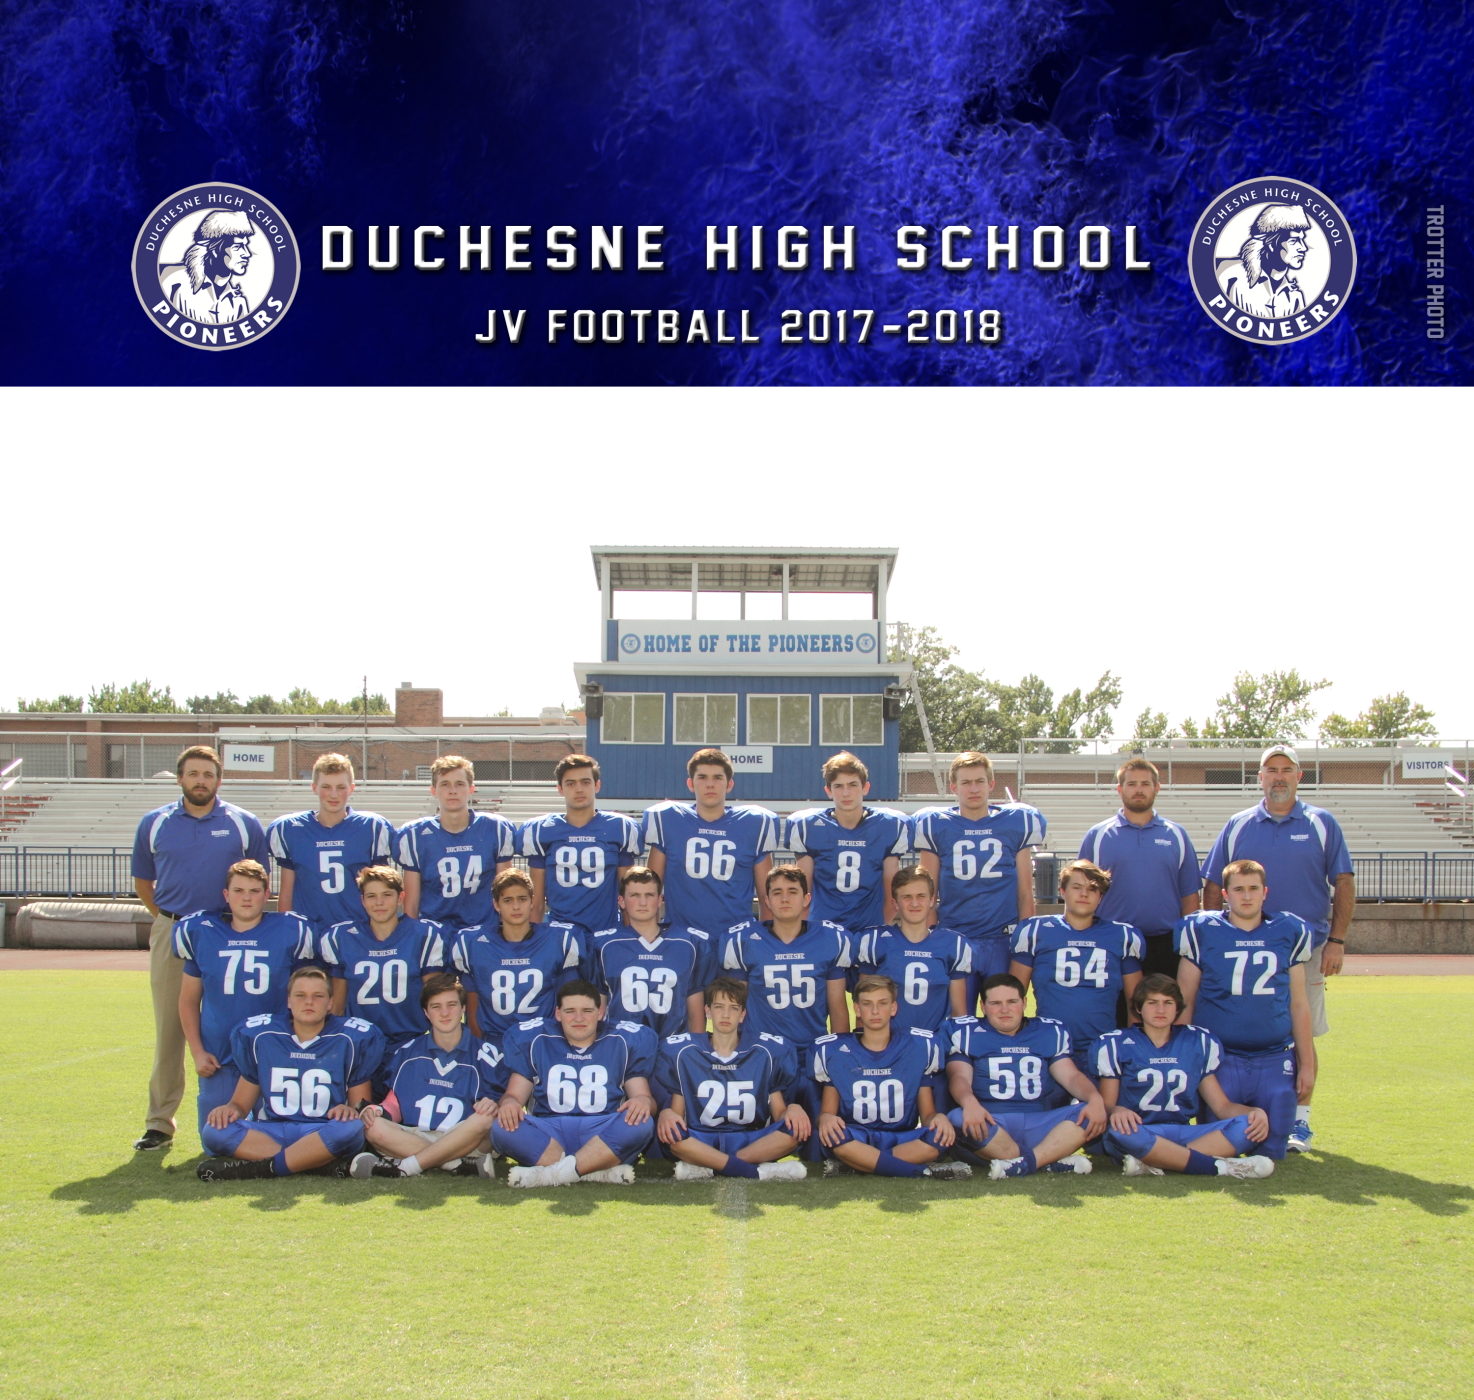 Duchesne High School Soccer Schedule Duchesne High School Football Team